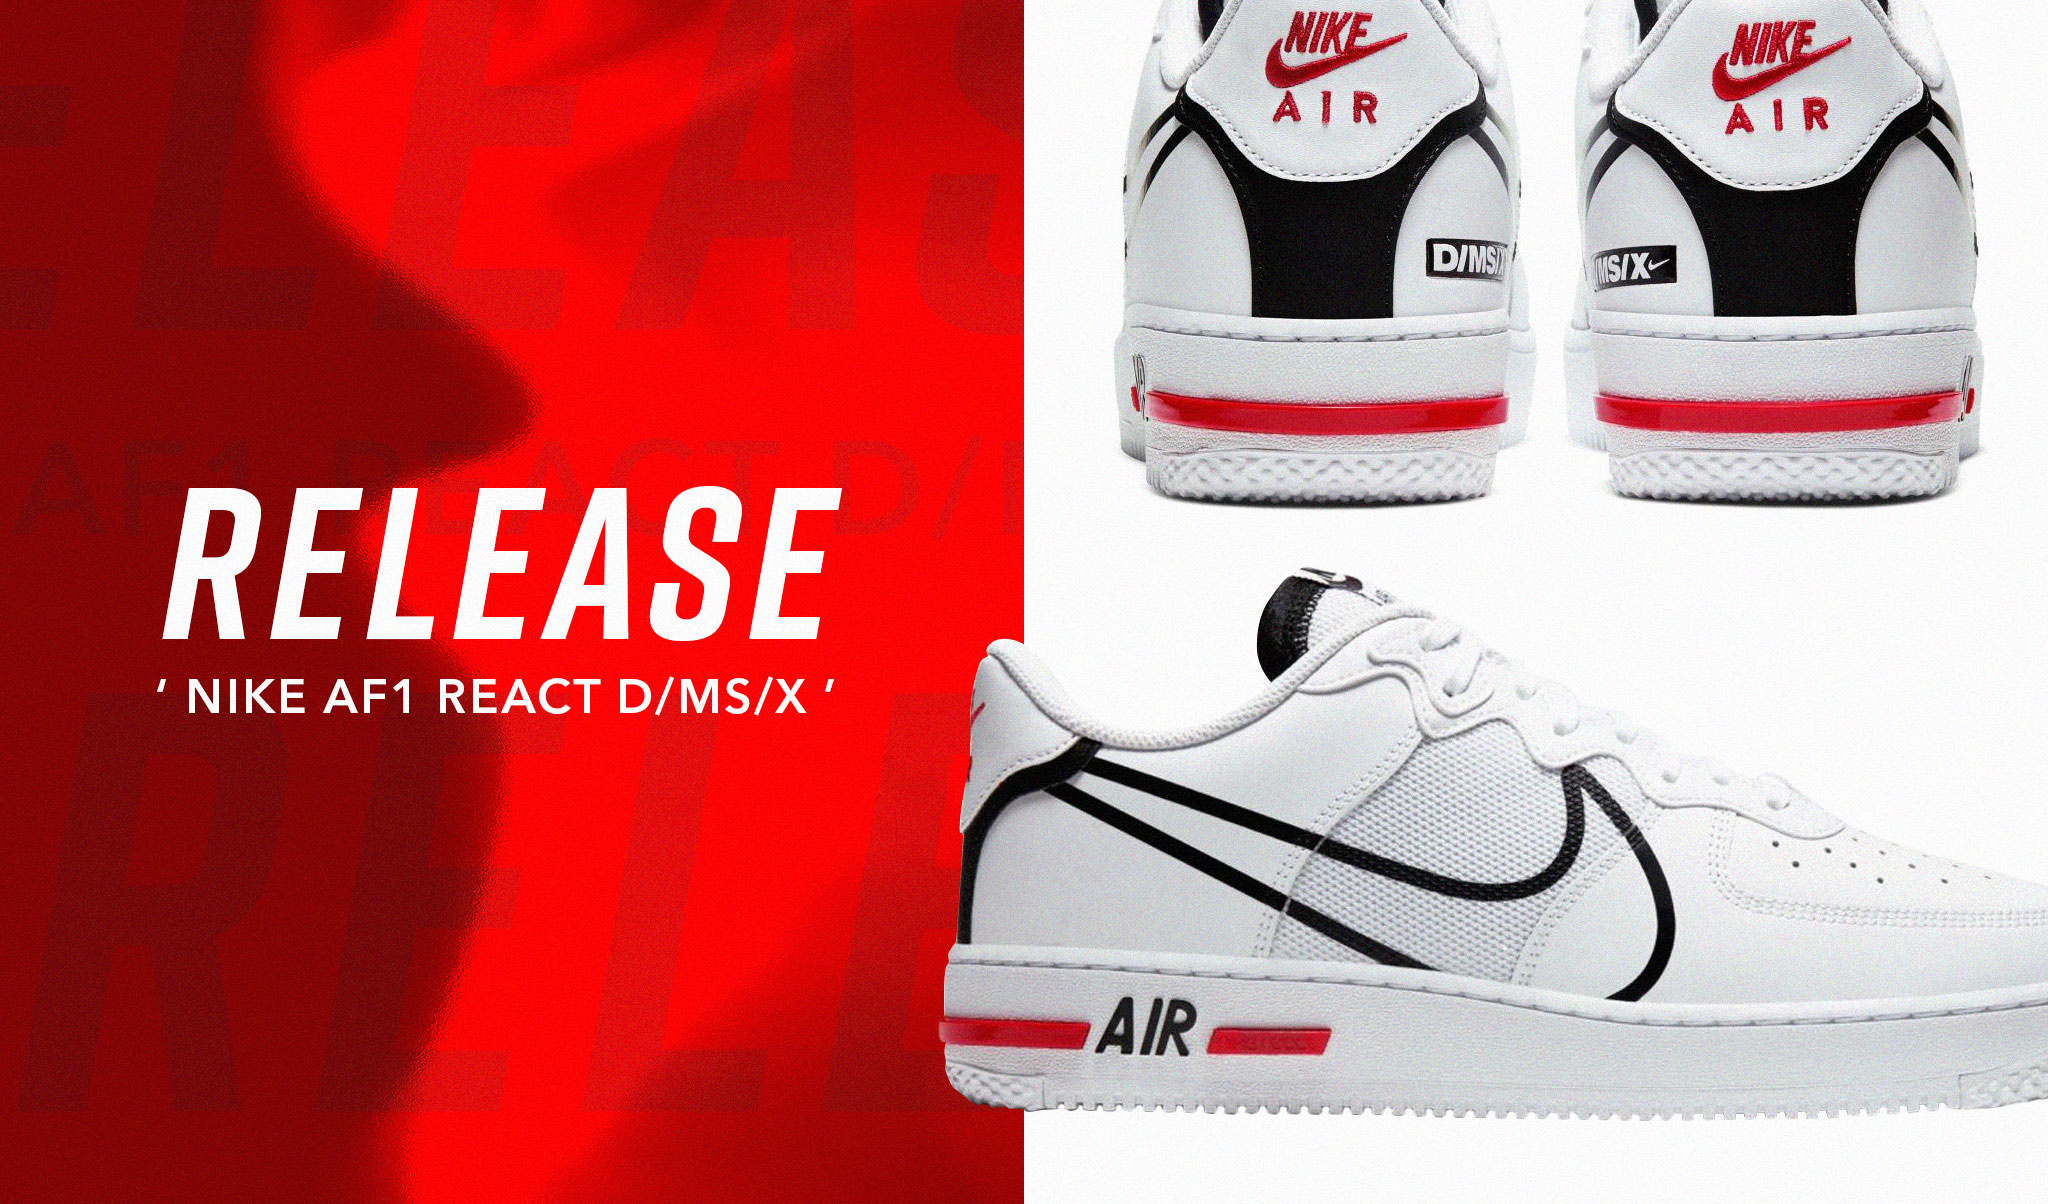 Release - Nike AF1 React D/MS/X